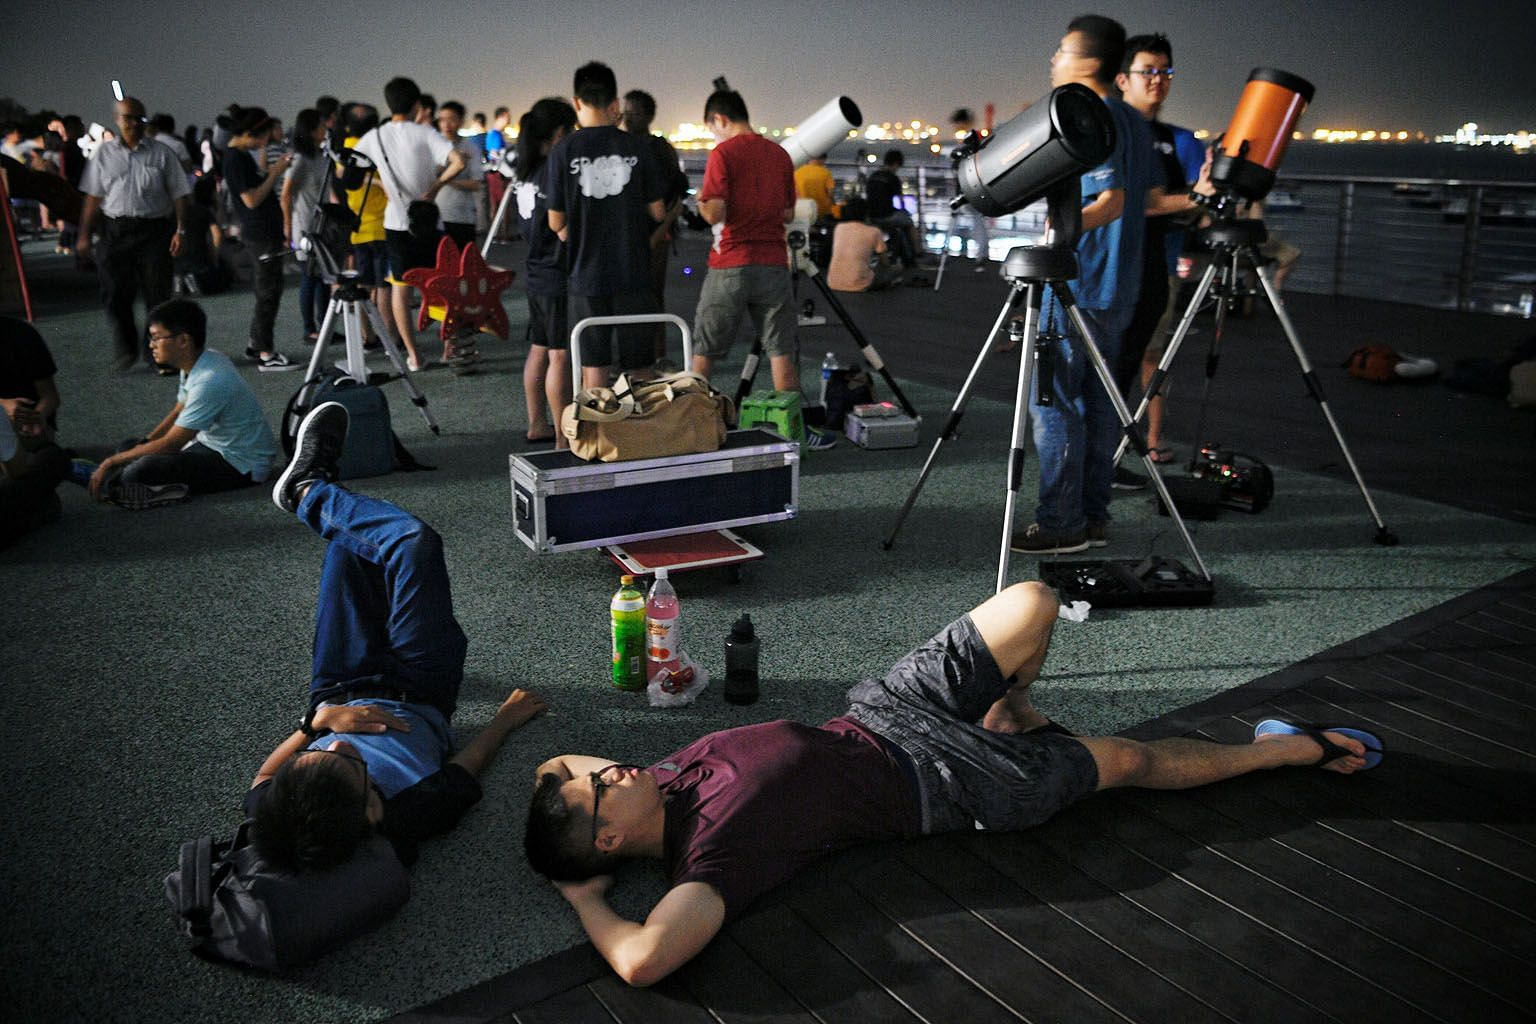 People on the roof of the Singapore Maritime Gallery on July 27 last year waiting to witness a total lunar eclipse. For the annular solar eclipse on Dec 26, the best view of the phenomenon is from the southern part of Singapore.